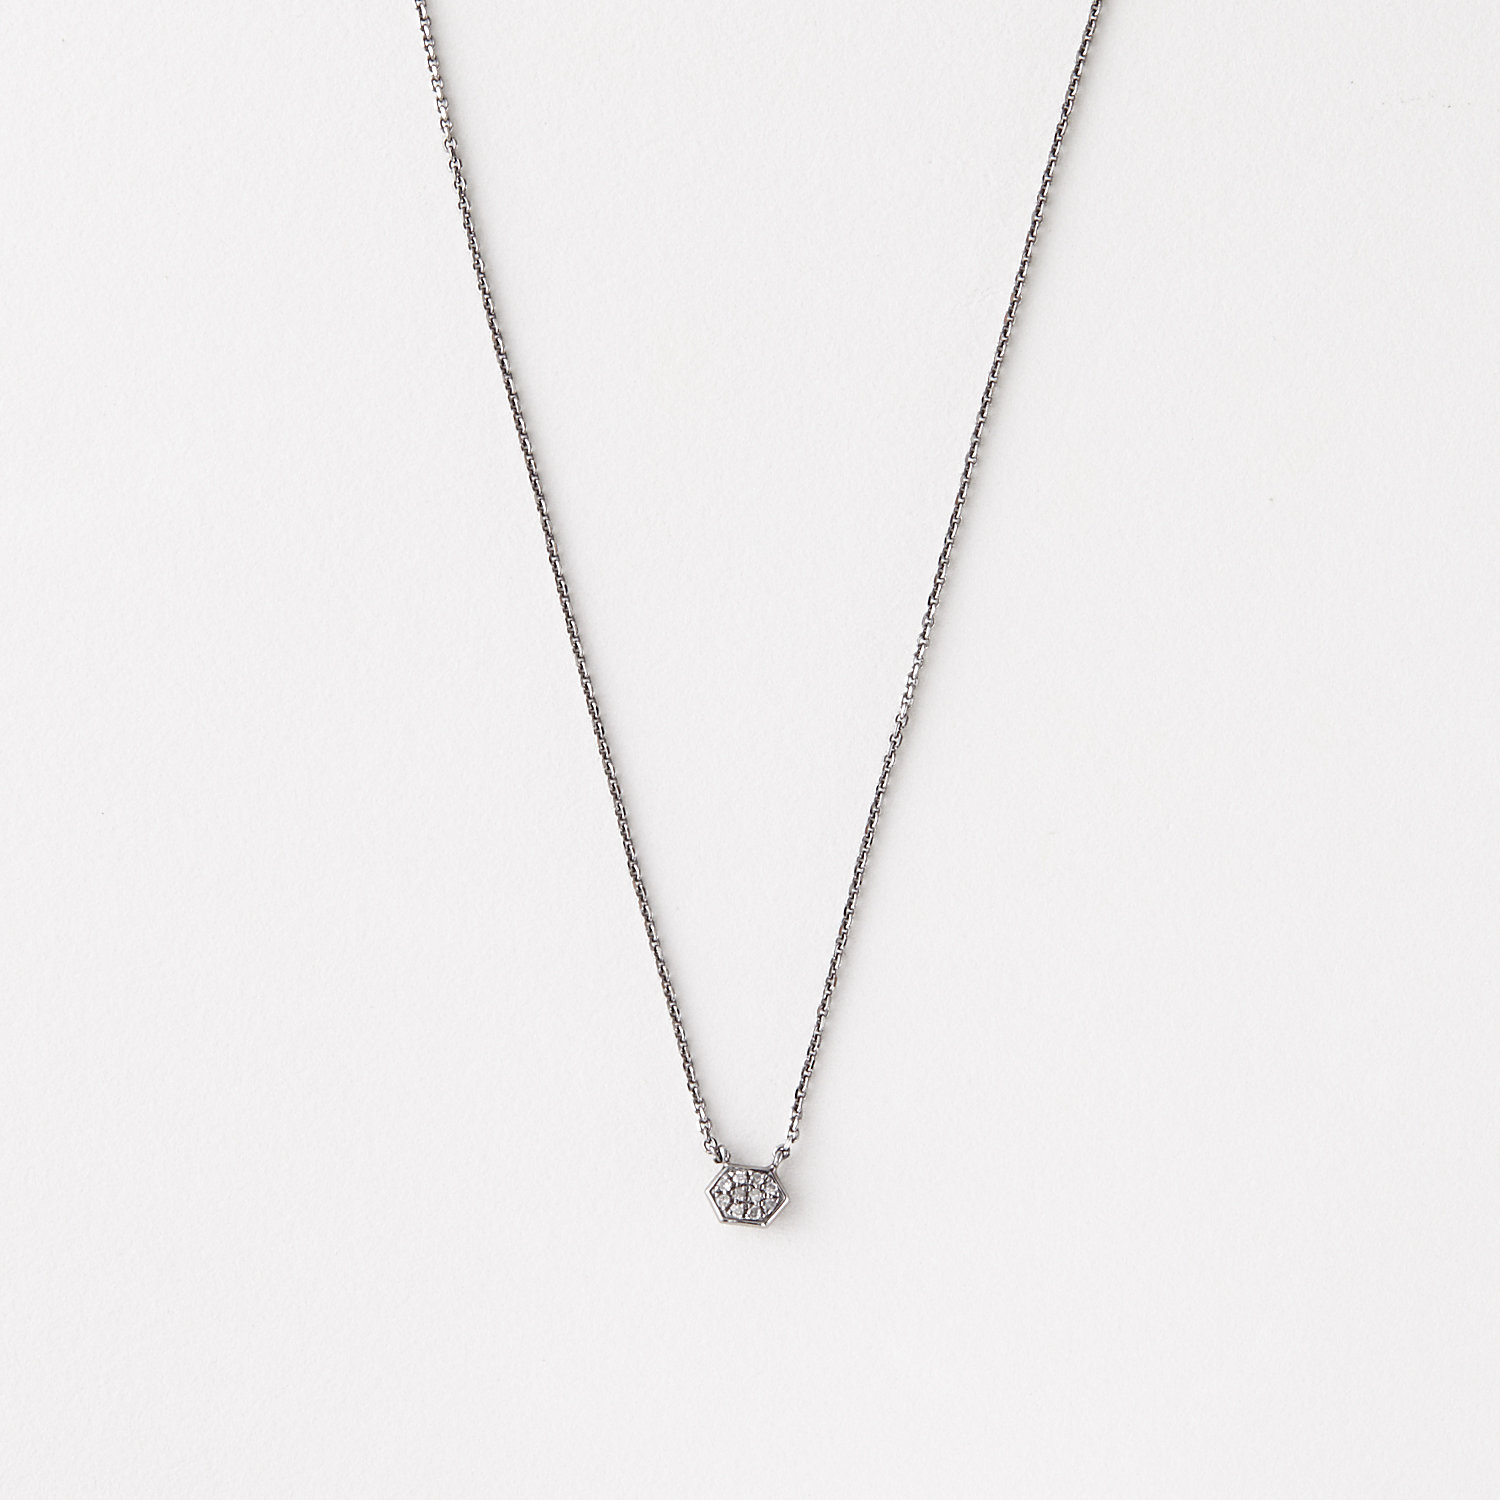 MELISSA NECKLACE SINGLE DROP